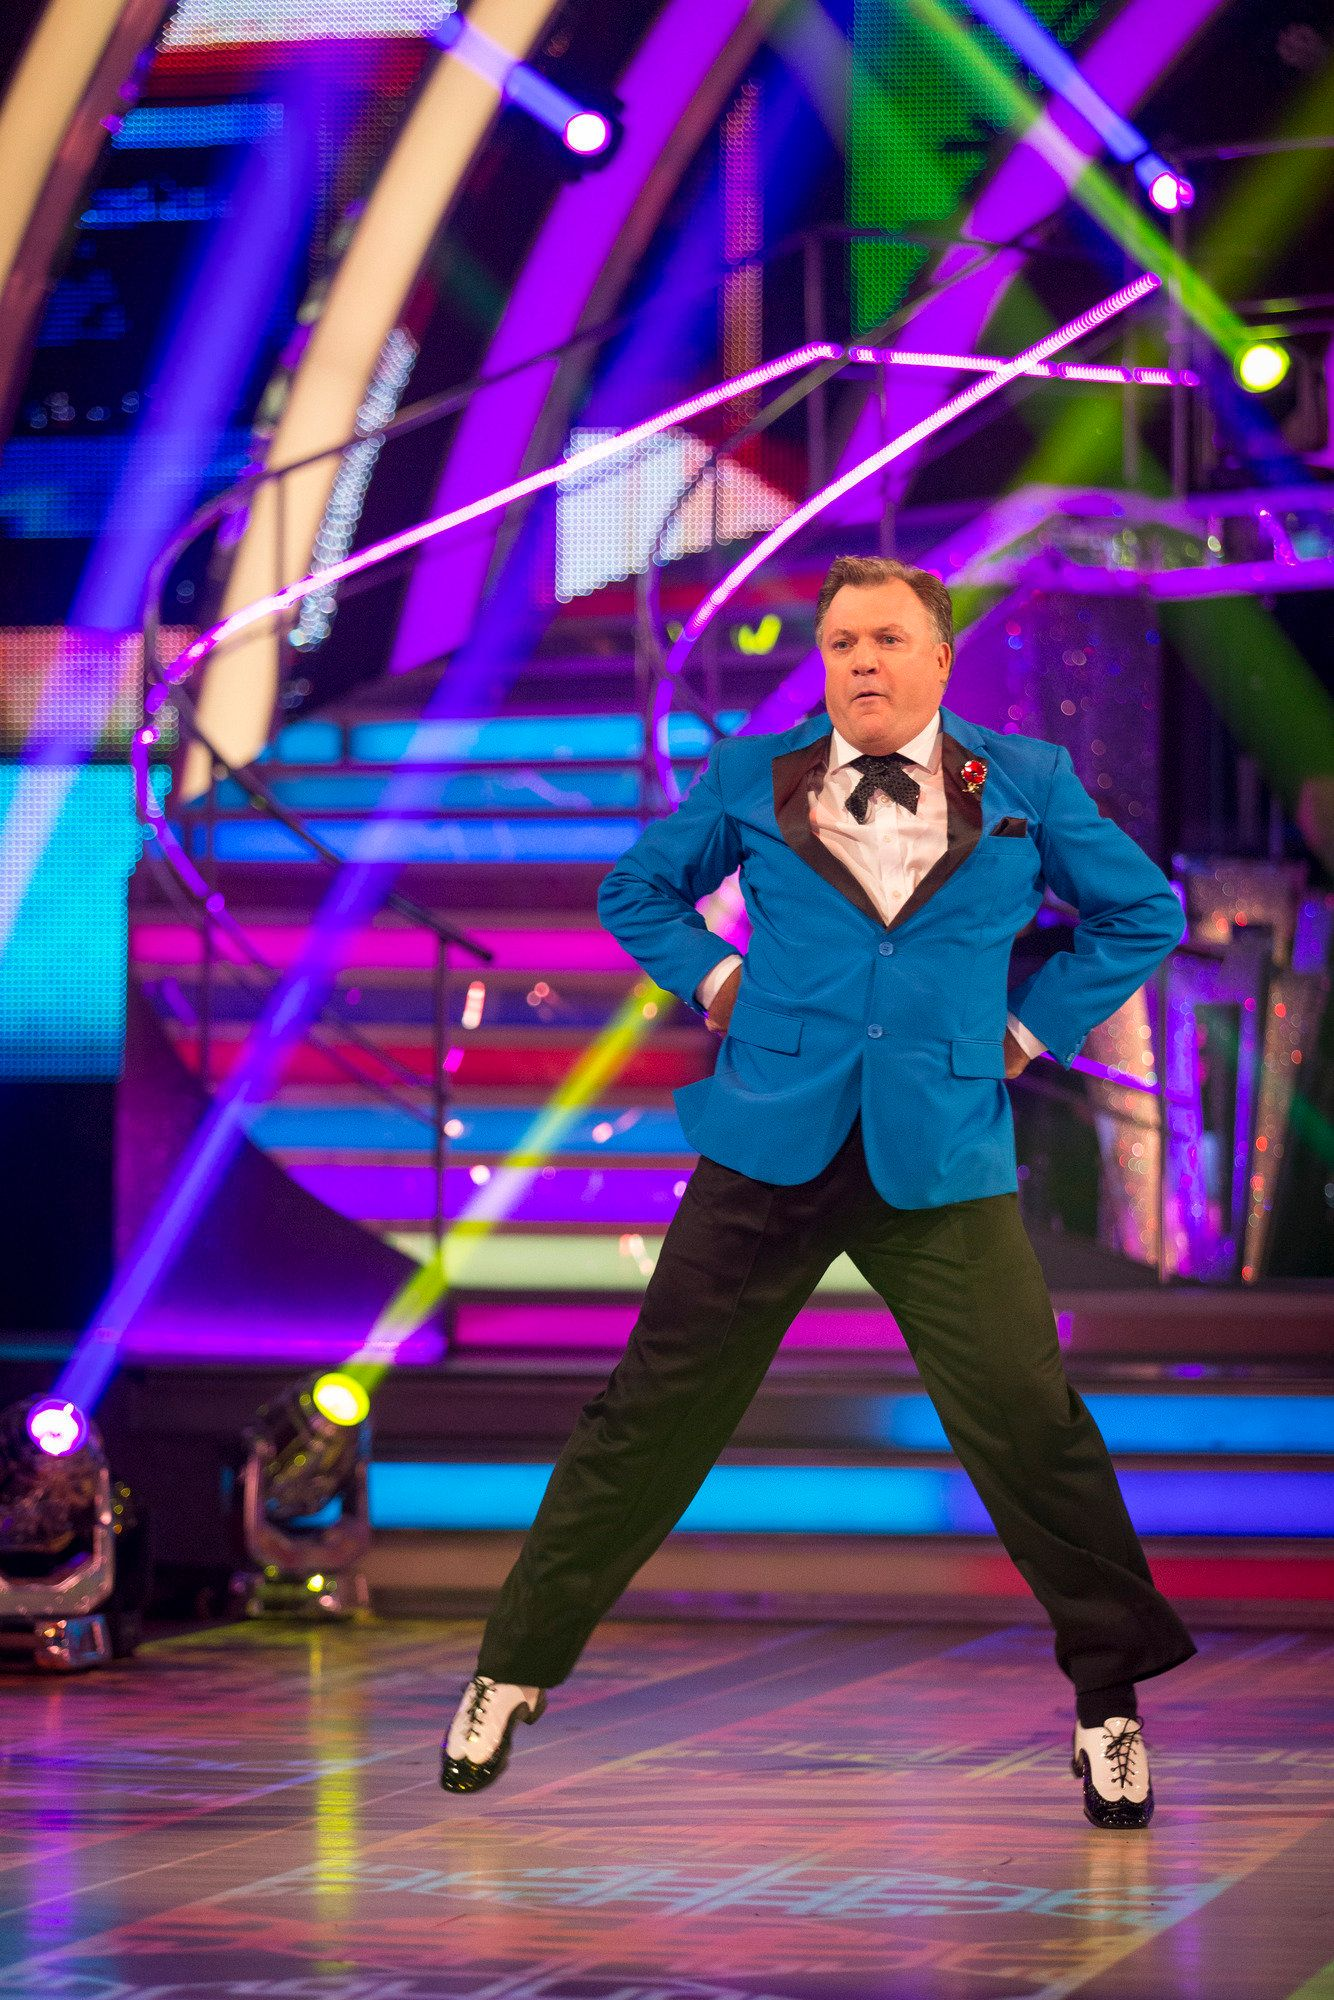 'Strictly Come Dancing' Star Ore Oduba Defends Ed Balls' Place On The